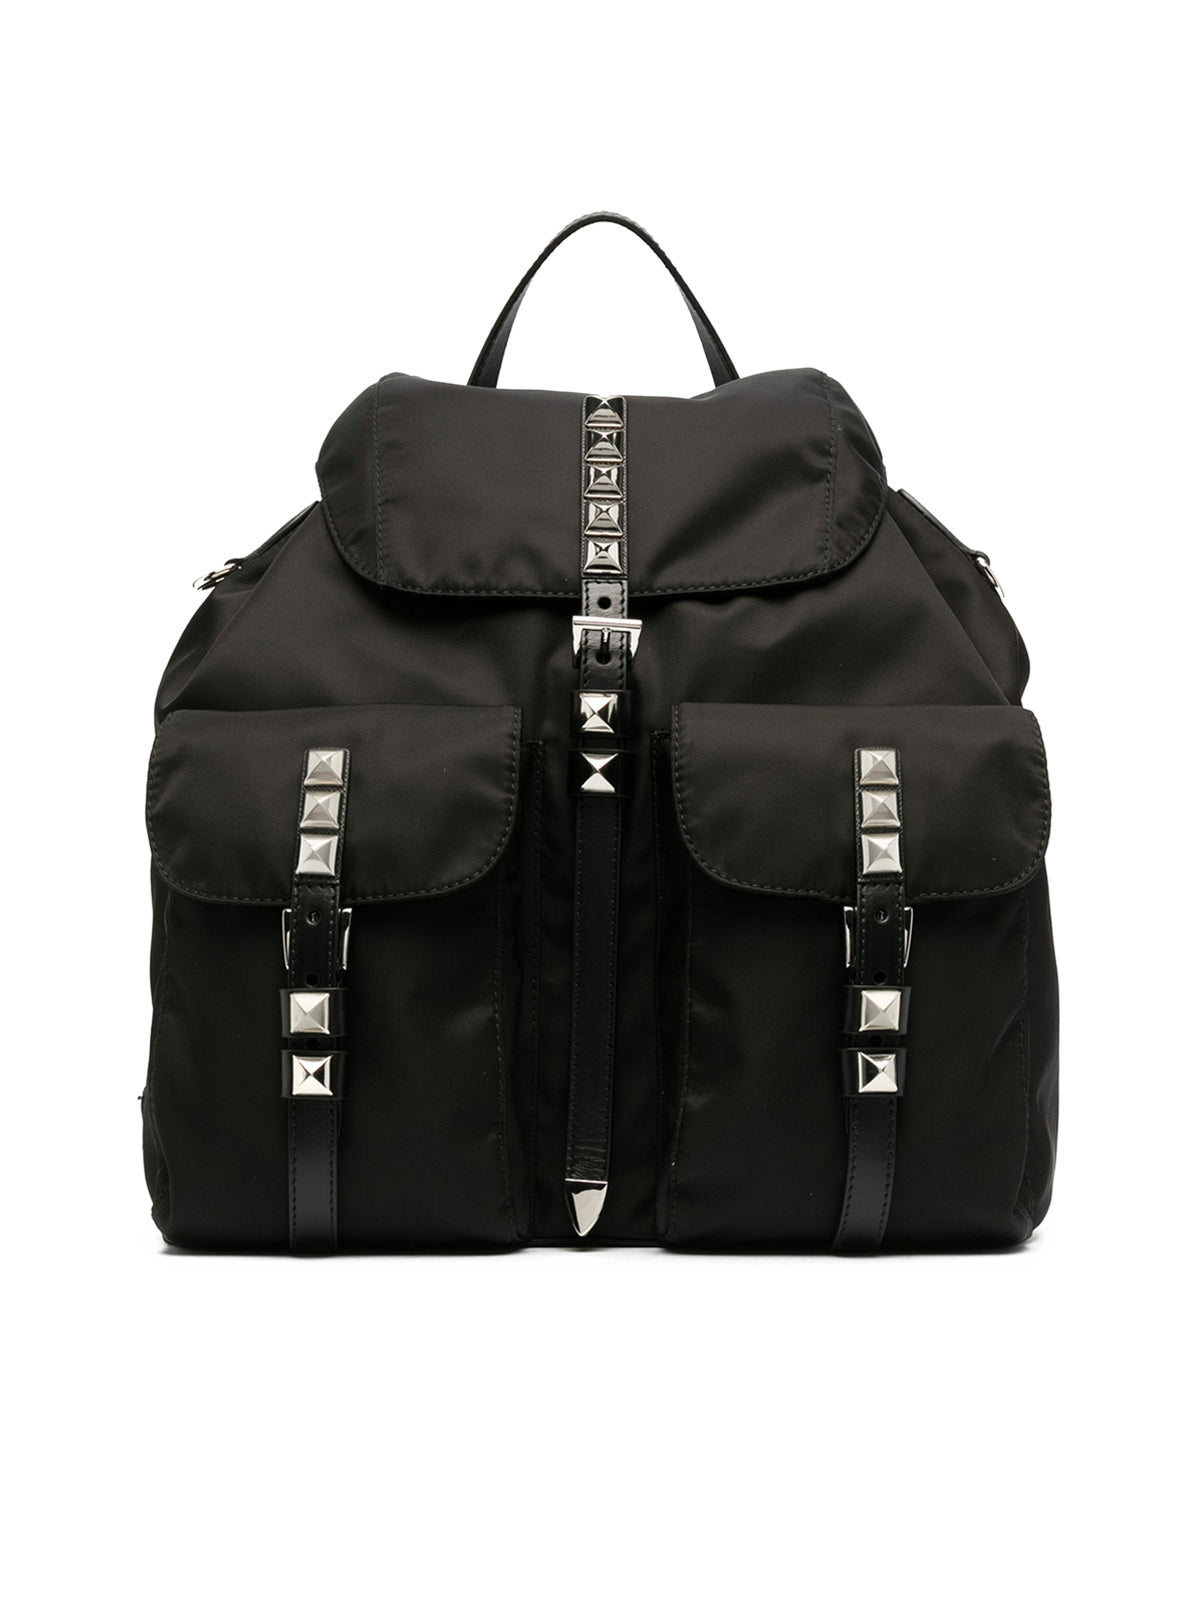 Backpack with application